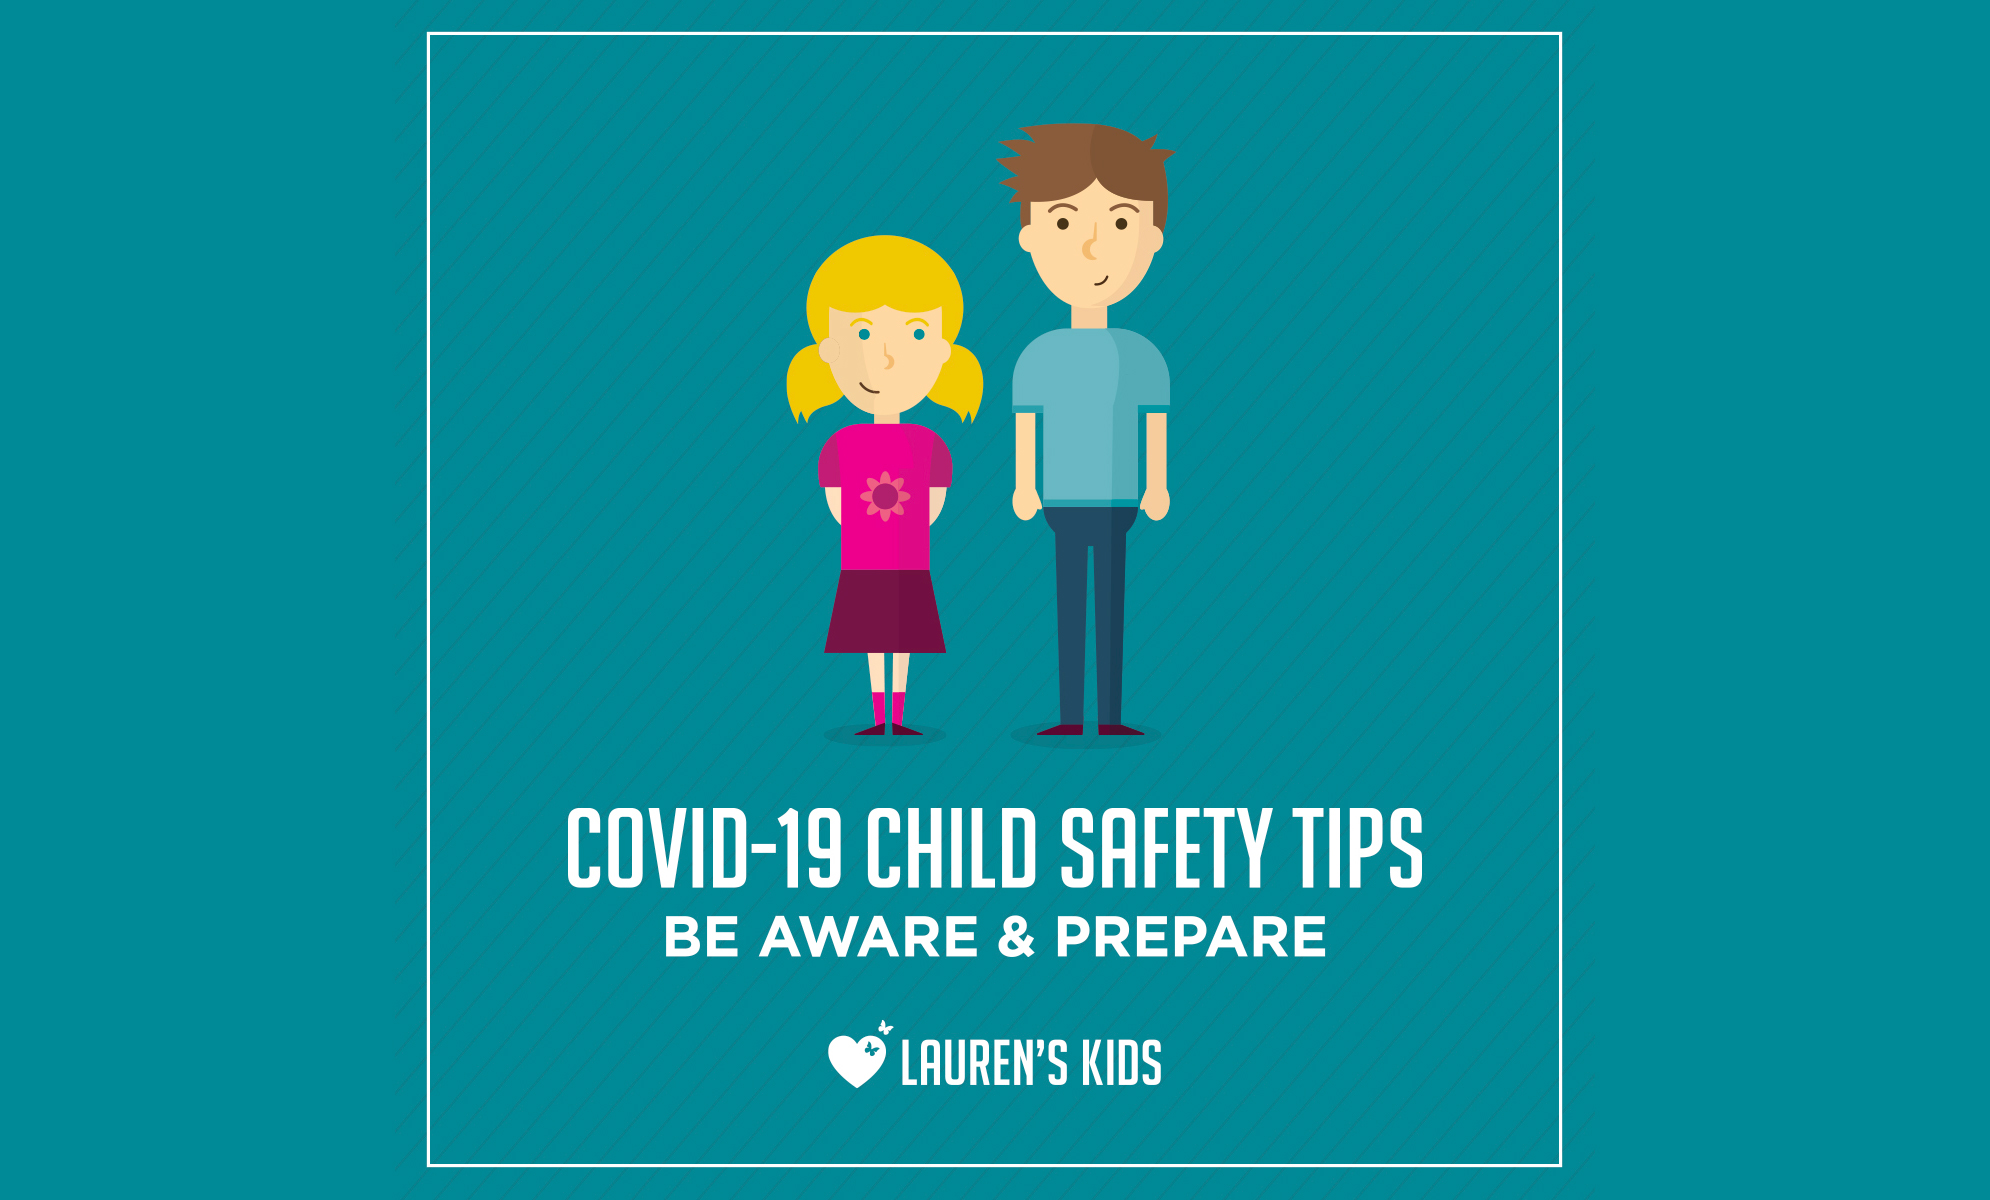 COVID-19 Child Safety Tips